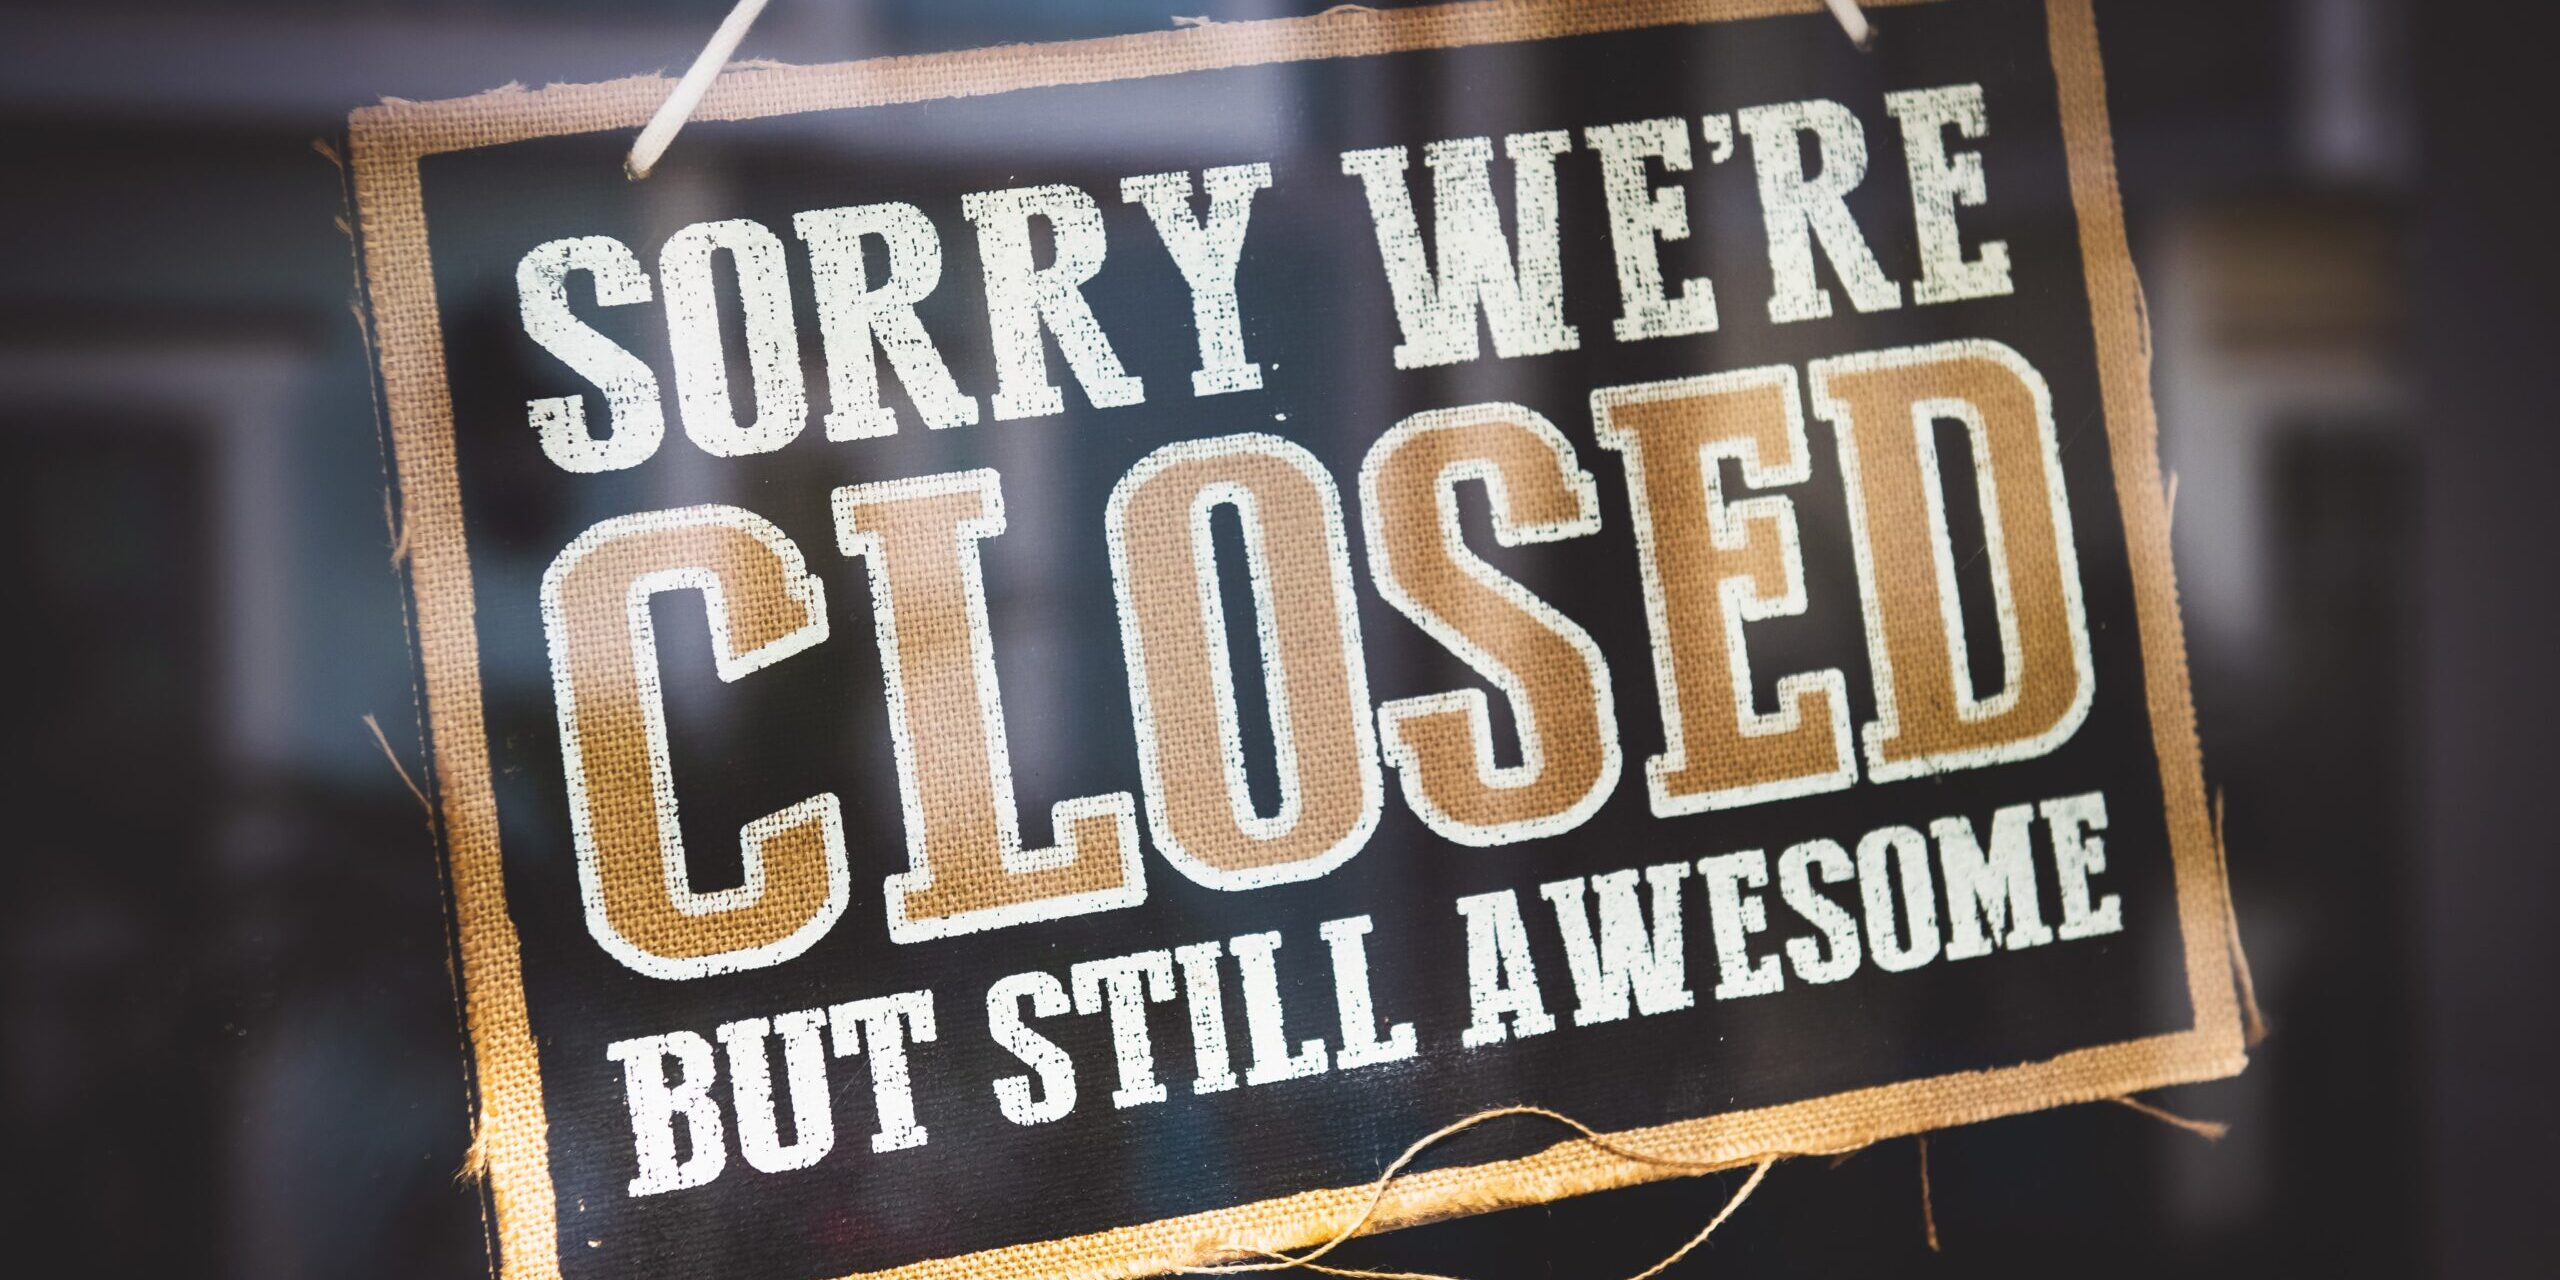 sorry-we-re-closed-but-still-awesome-tag-1101720